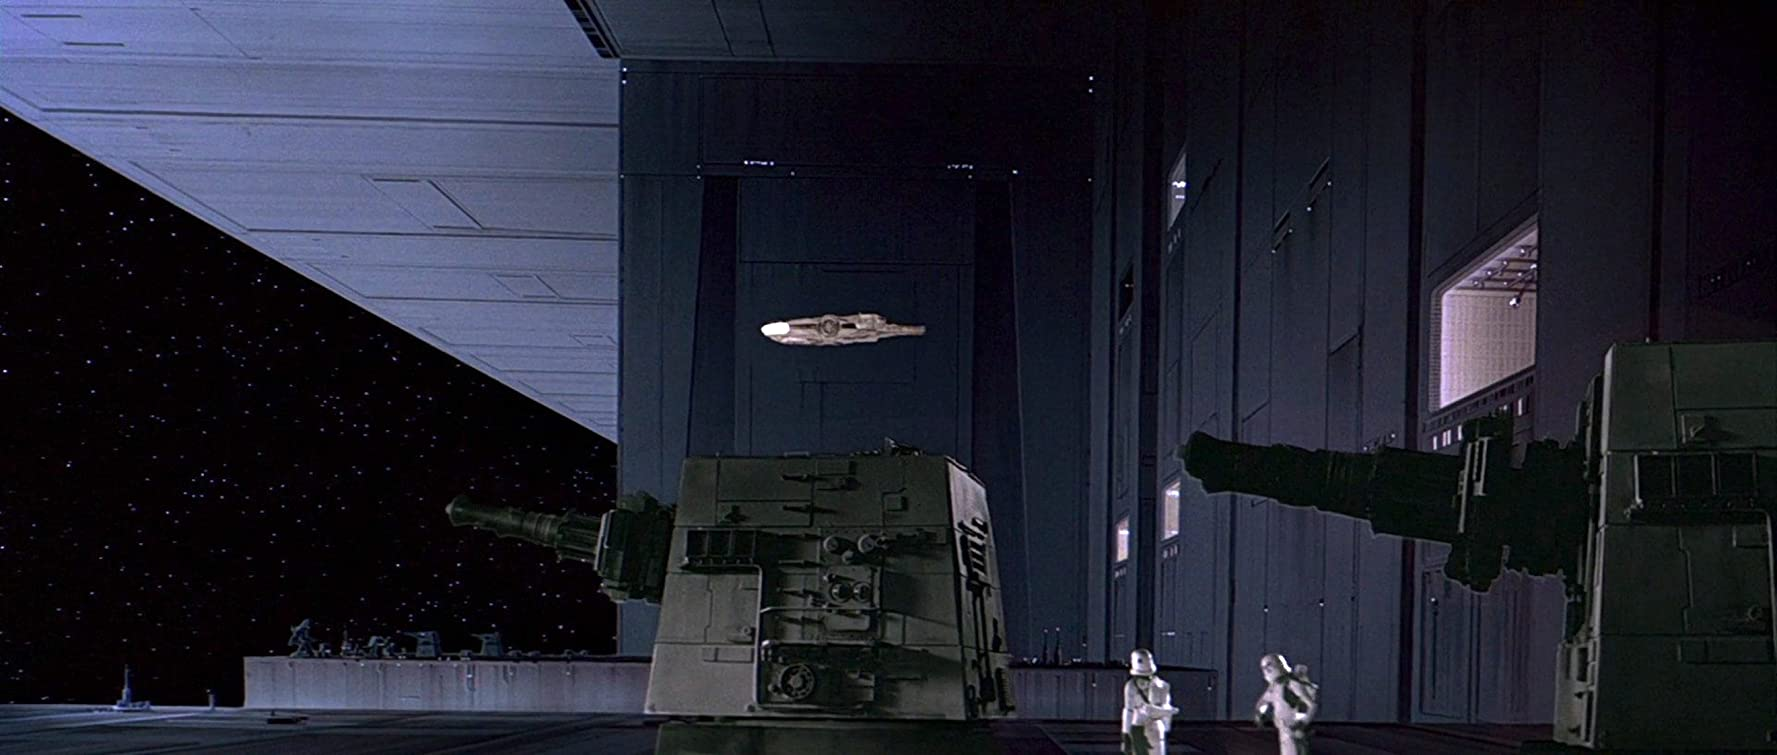 Awesome Concept Art Images From Ralph Mcquarrie For Star Wars